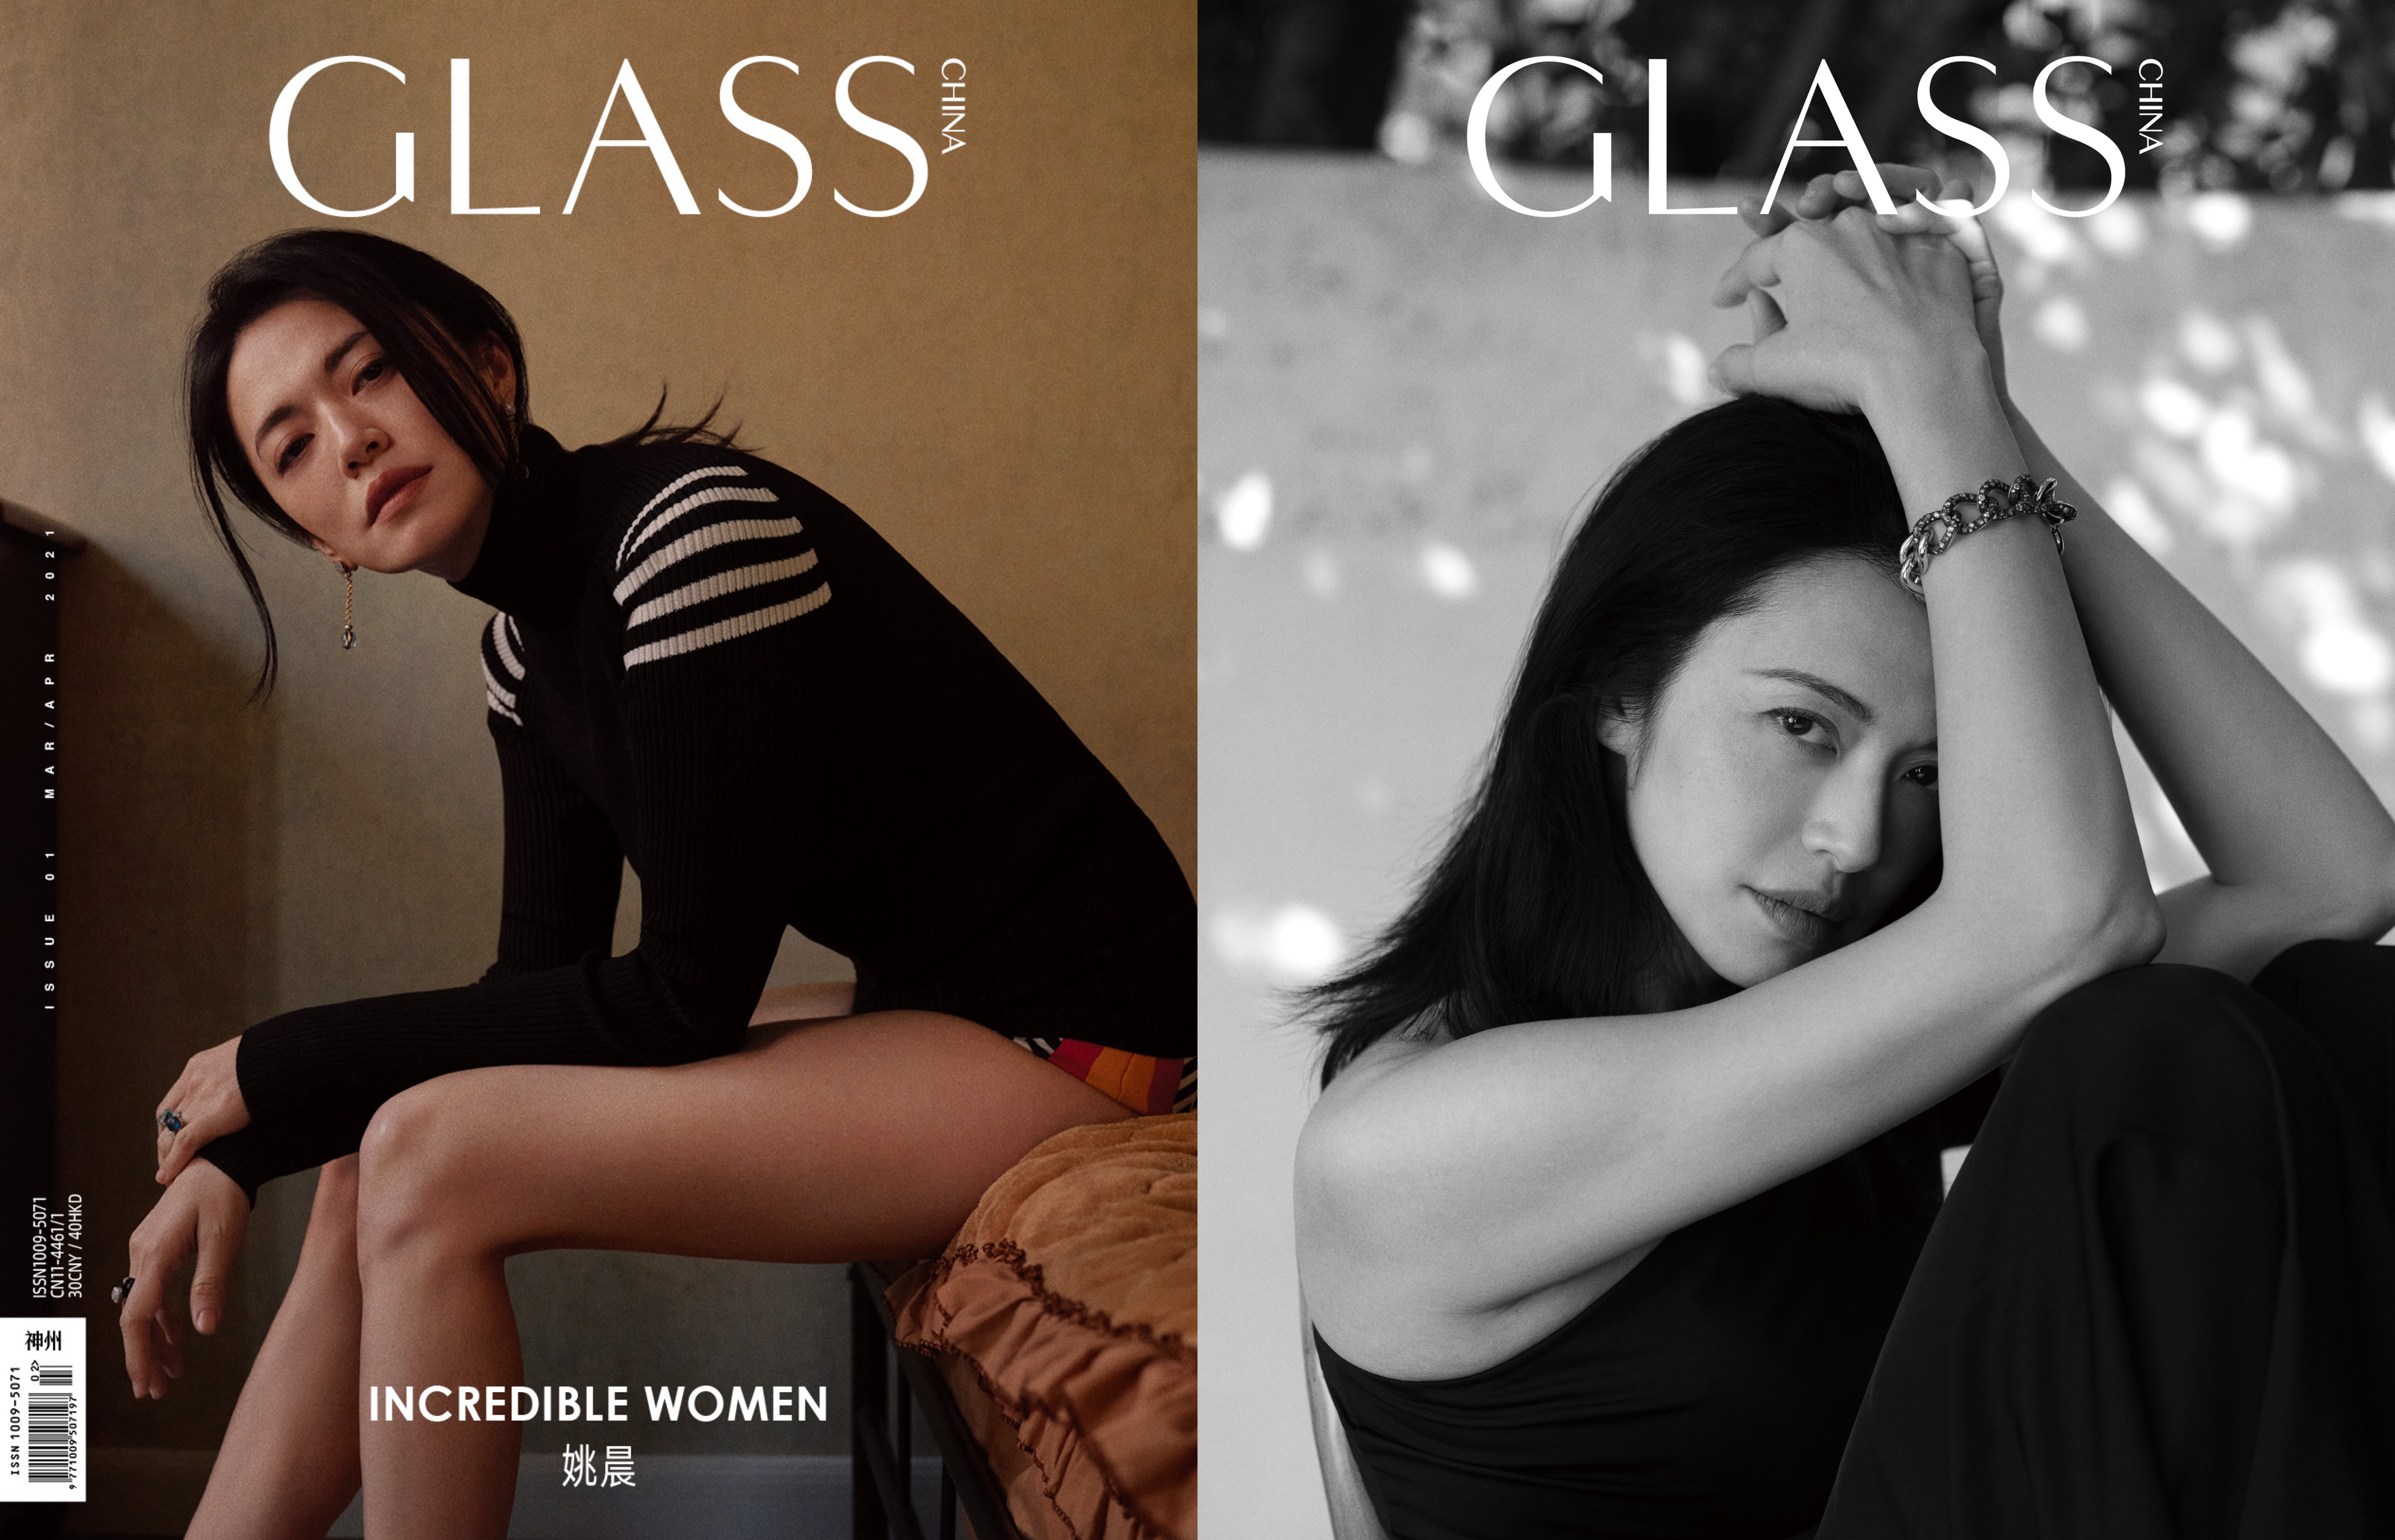 Actress Yao Chen fronts the cover of the launch issue of Glass China